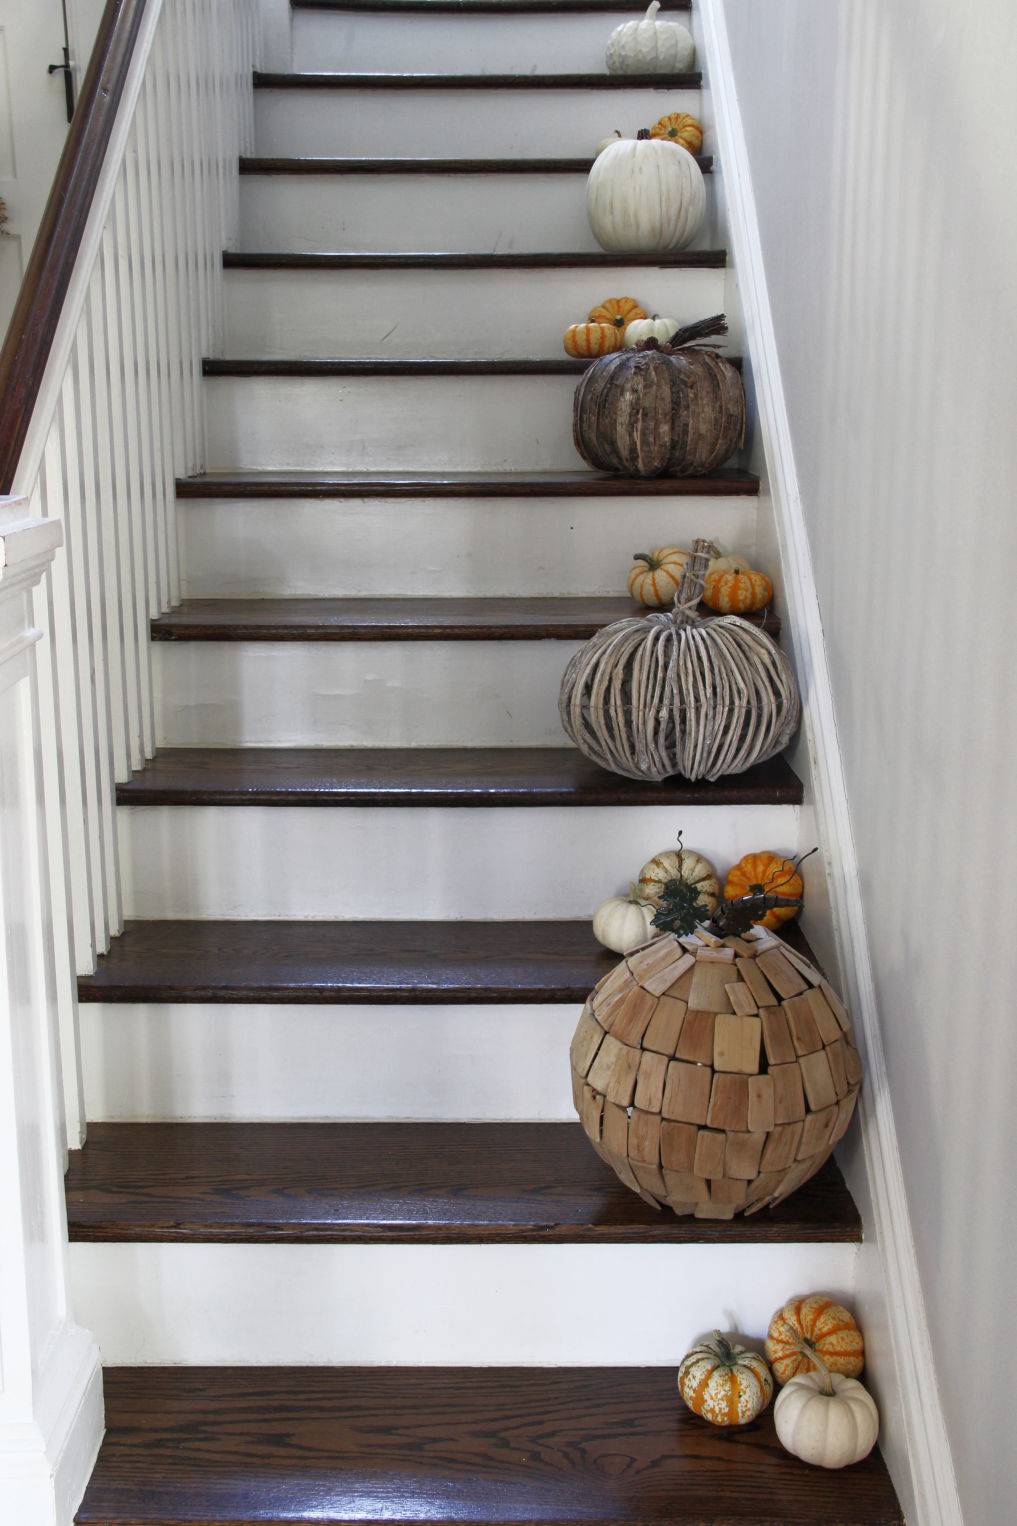 Vintage lovers fall home tour - love the neutral pumpkins on the stairs with colorful mini gourds kellyelko.com #fall #falldecor #falldecorating #fallfoyer #foyer #staircase #neutralfall #neutralfalldecor #neutraldecor #pumpkins #autumndecor #autumndecorating #pumpkindecor #fallhometour